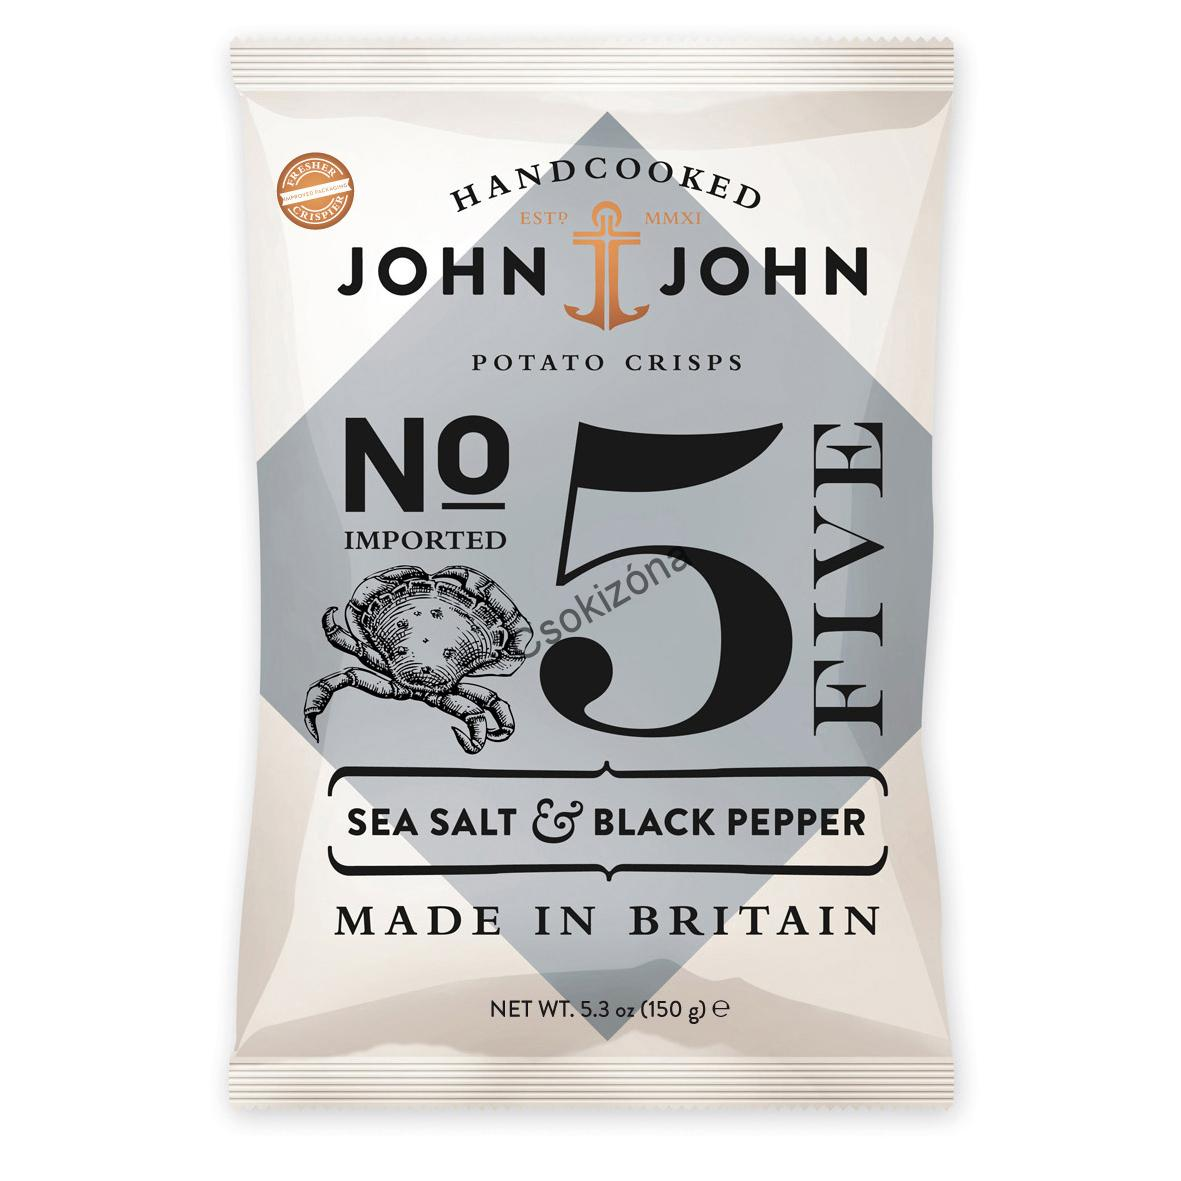 John&John Sea Salt & Black Pepper